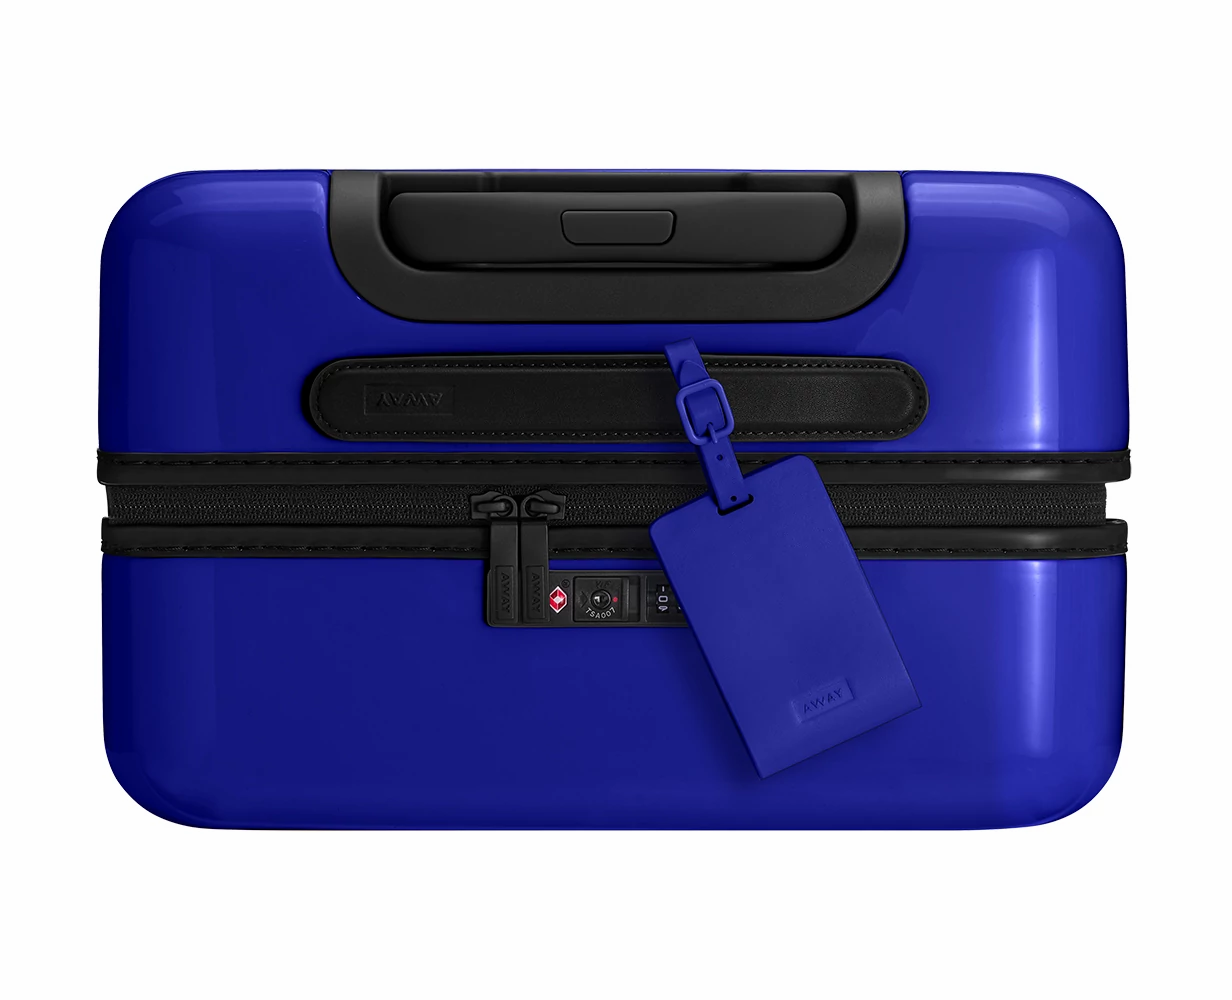 Nightfall leather luggage tag shown on handle of Nightfall Ombre hard suitcase.